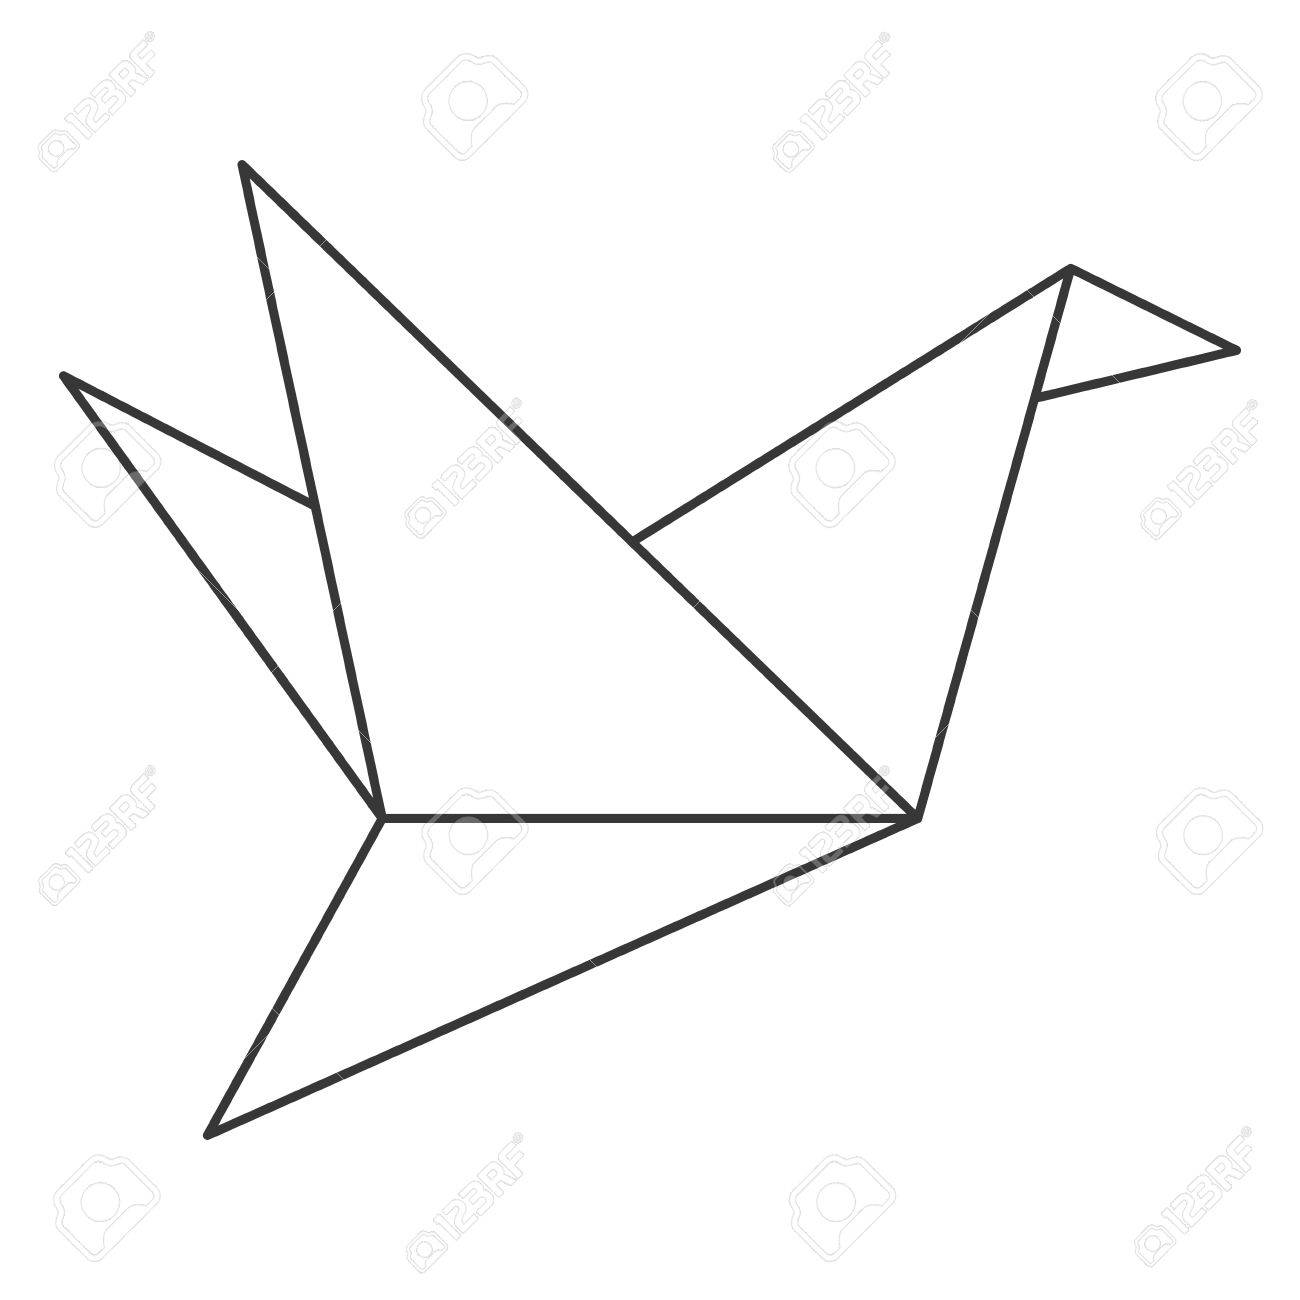 Step by step instructions how to make origami a bird. | 1300x1300